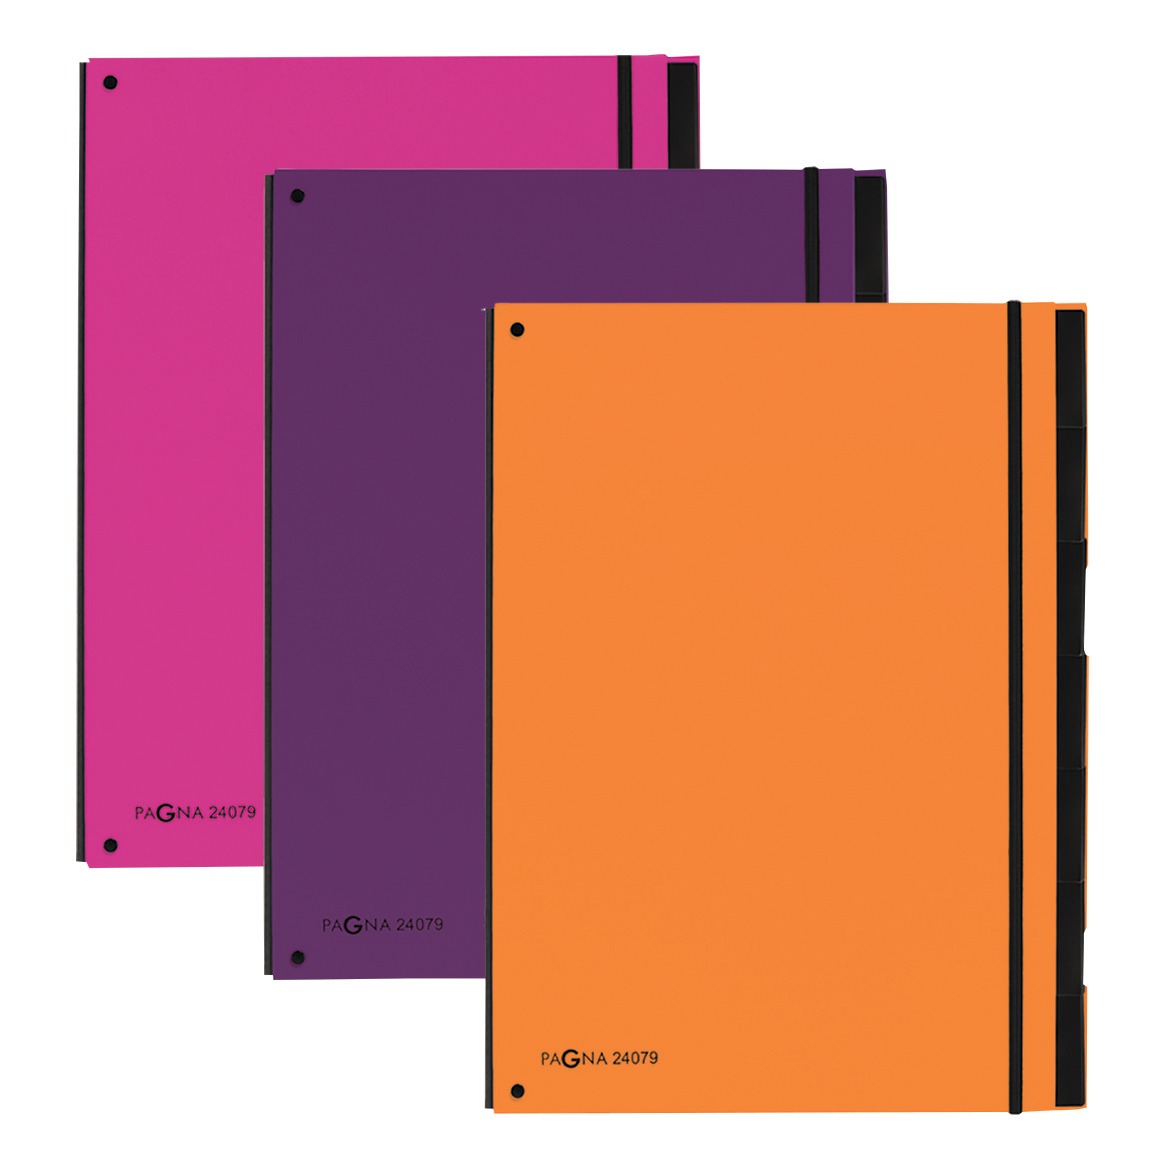 Pagna Master Organiser Hardback 12 Compartments A4 Pink Ref 2407934 [Pack 8] [FREE Case] Jul-Sep 2018